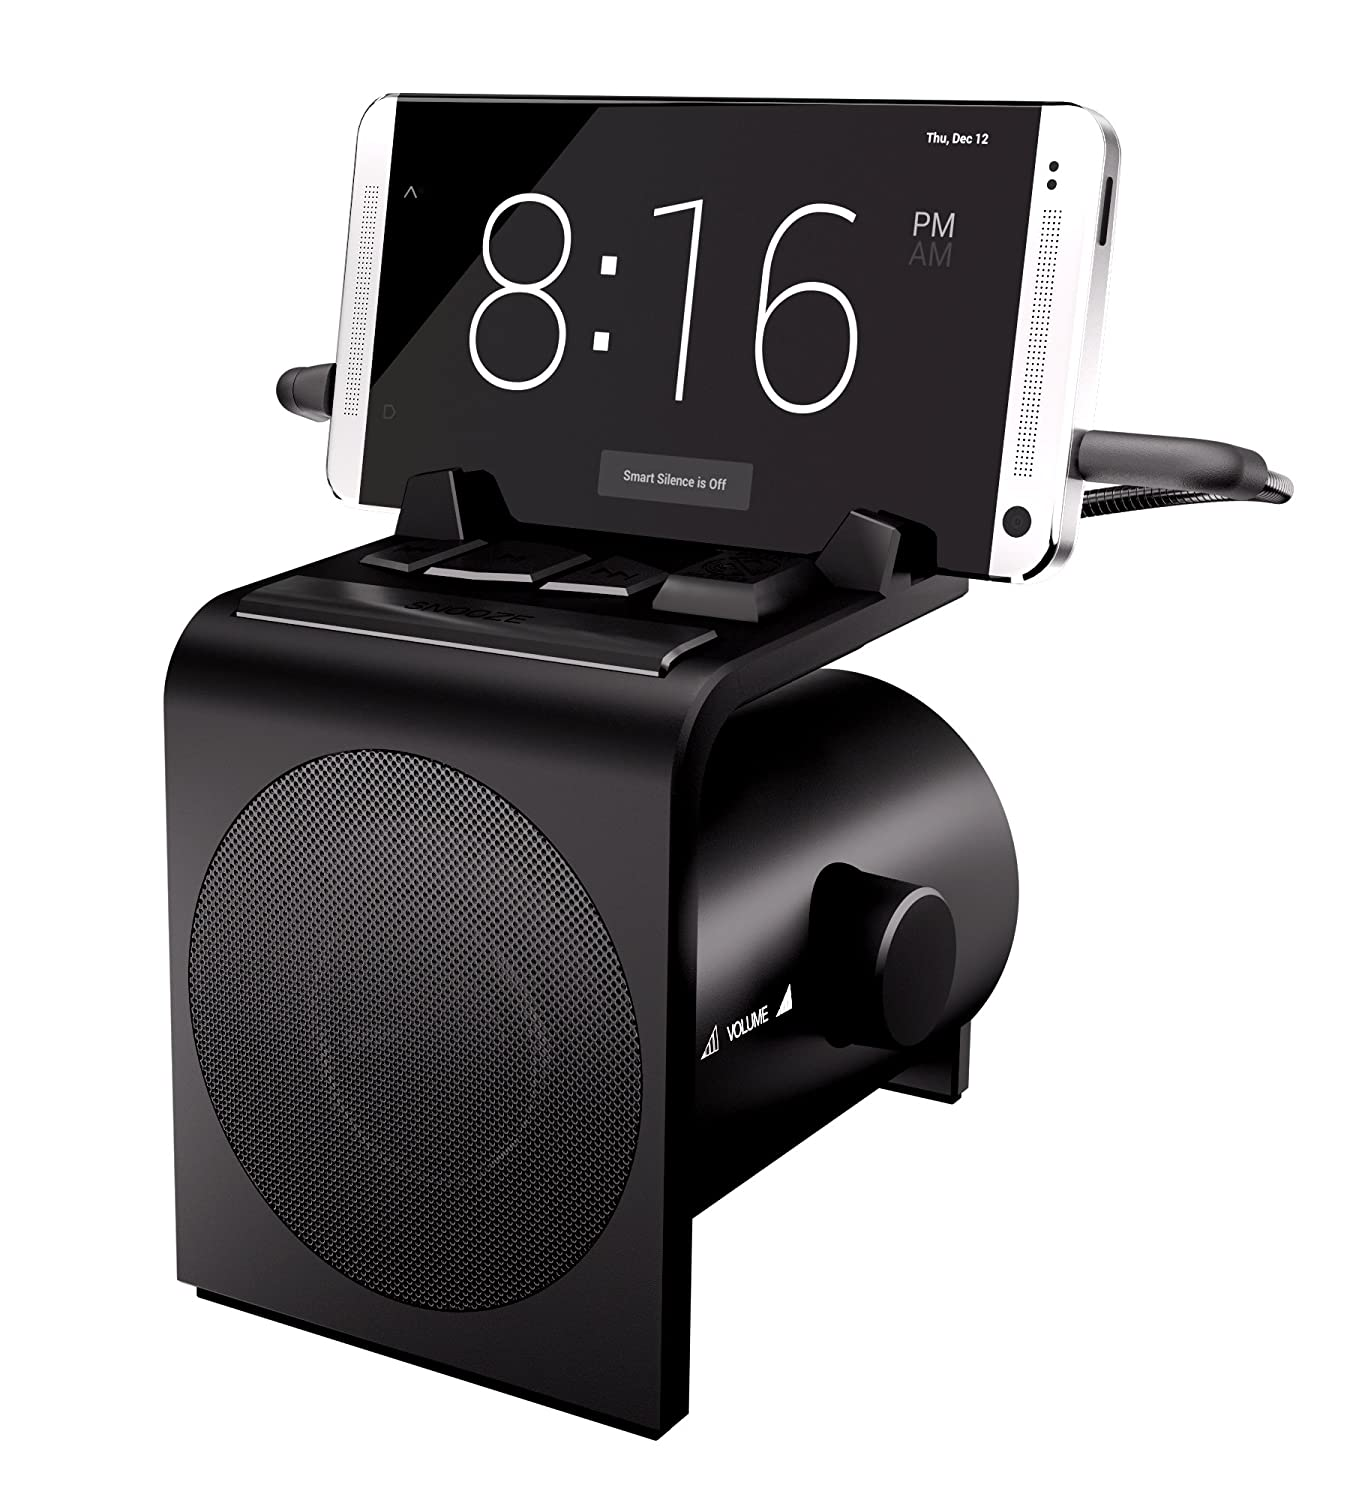 Dock Station Android Phone Dock For Android Phones